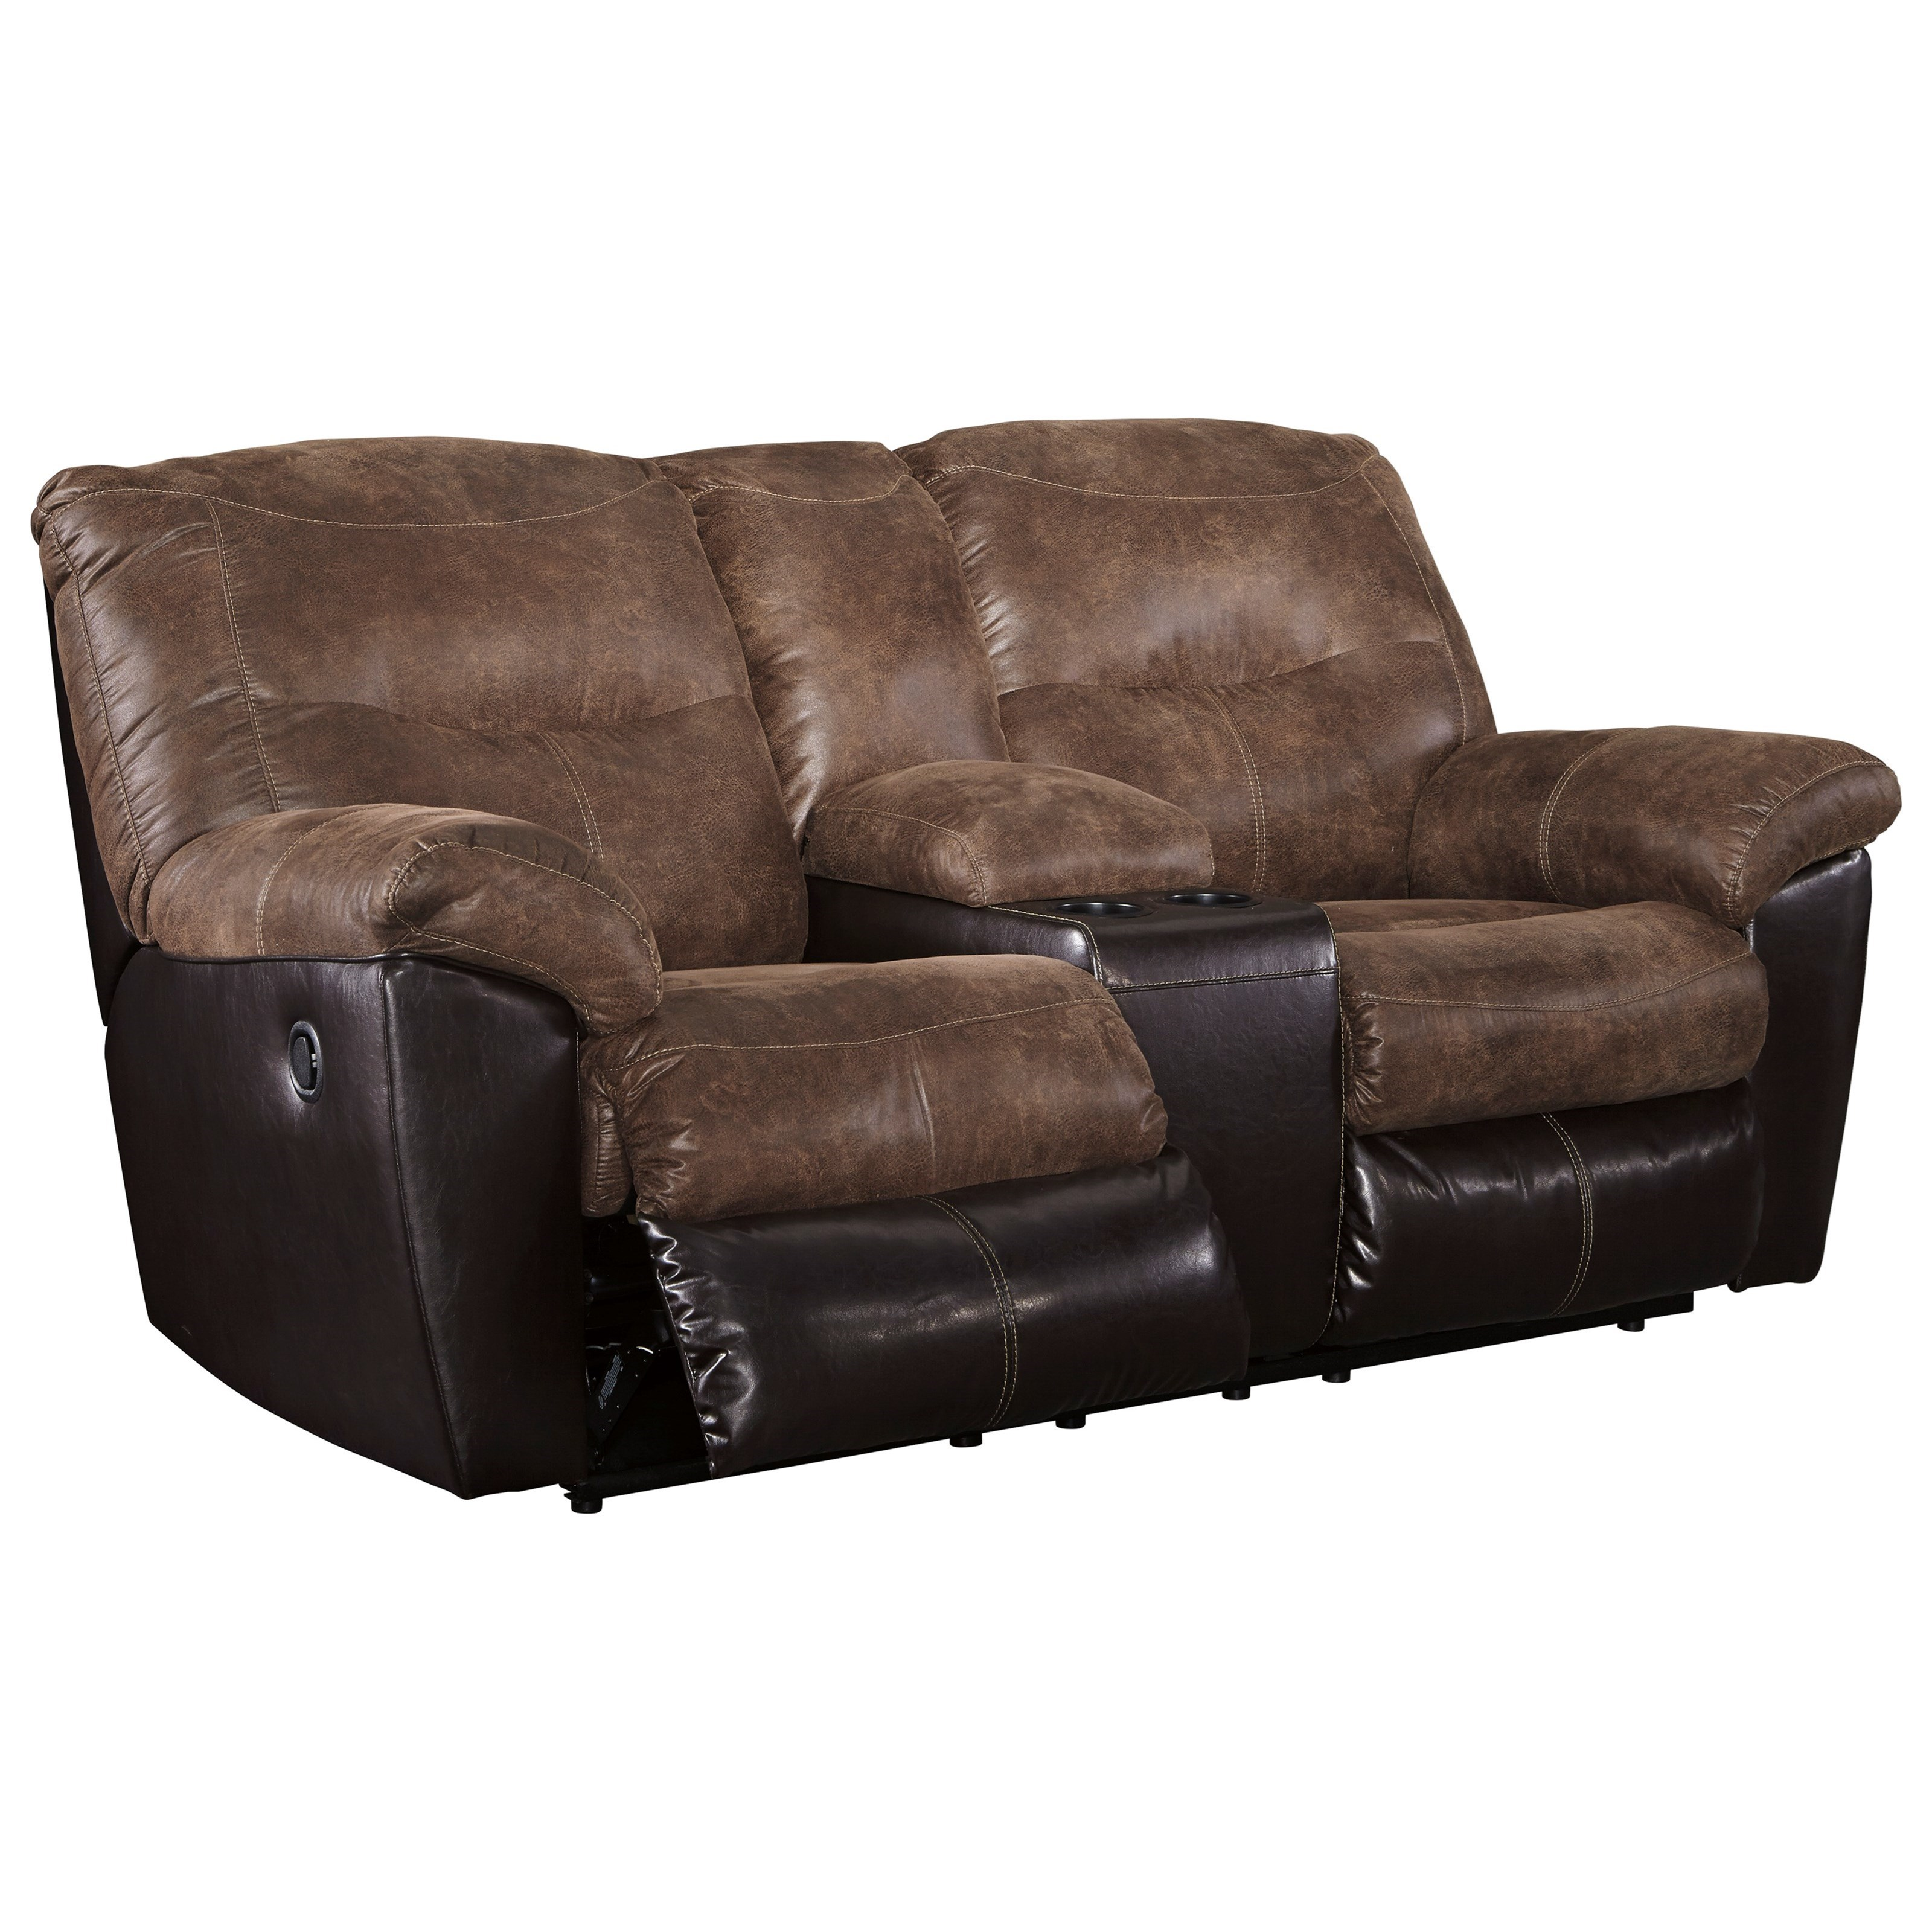 Two Tone Faux Leather Double Reclining Loveseat W/ Console